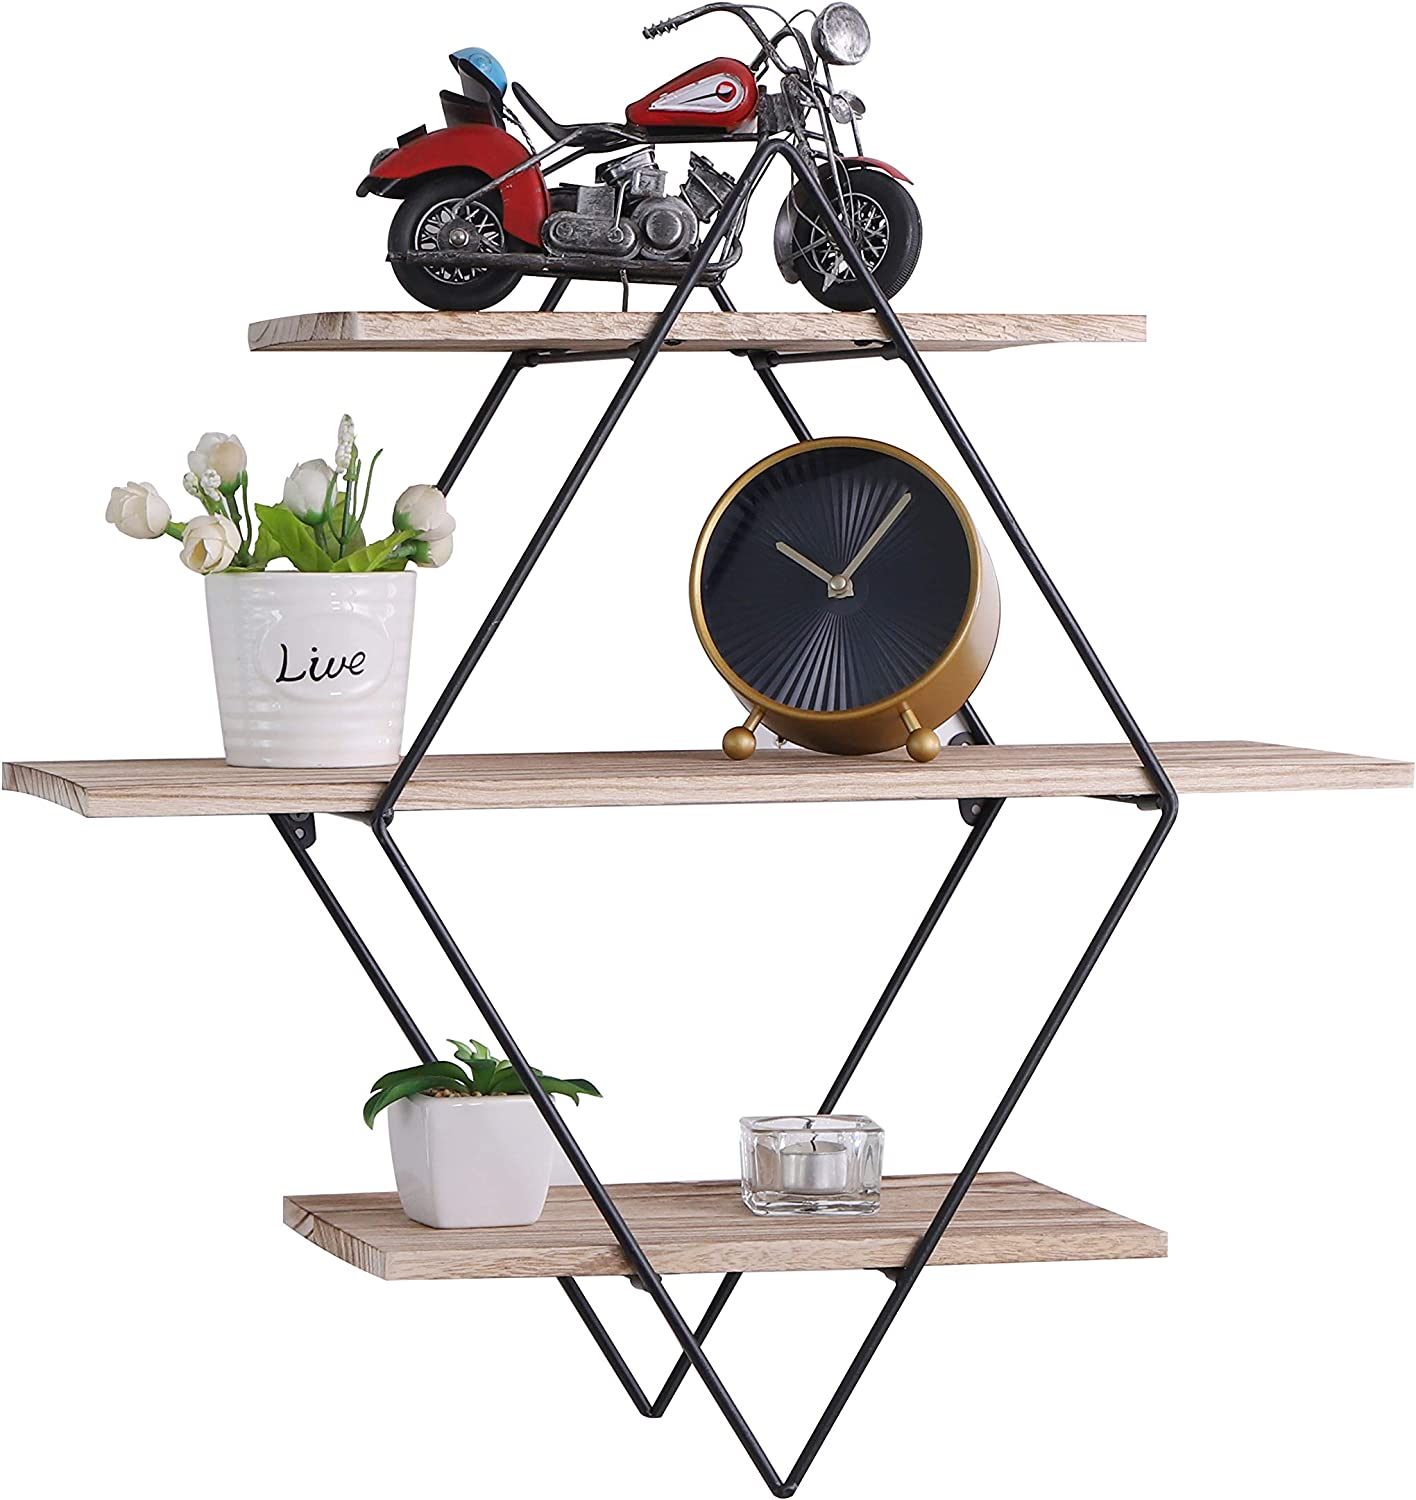 PENGKE 3 Tier Wall Floating Ledge Shelves for Home Decor,Wall Decoration Storage Shelf and Wall Mount Booke Display Rack for Bedroom and Living Room